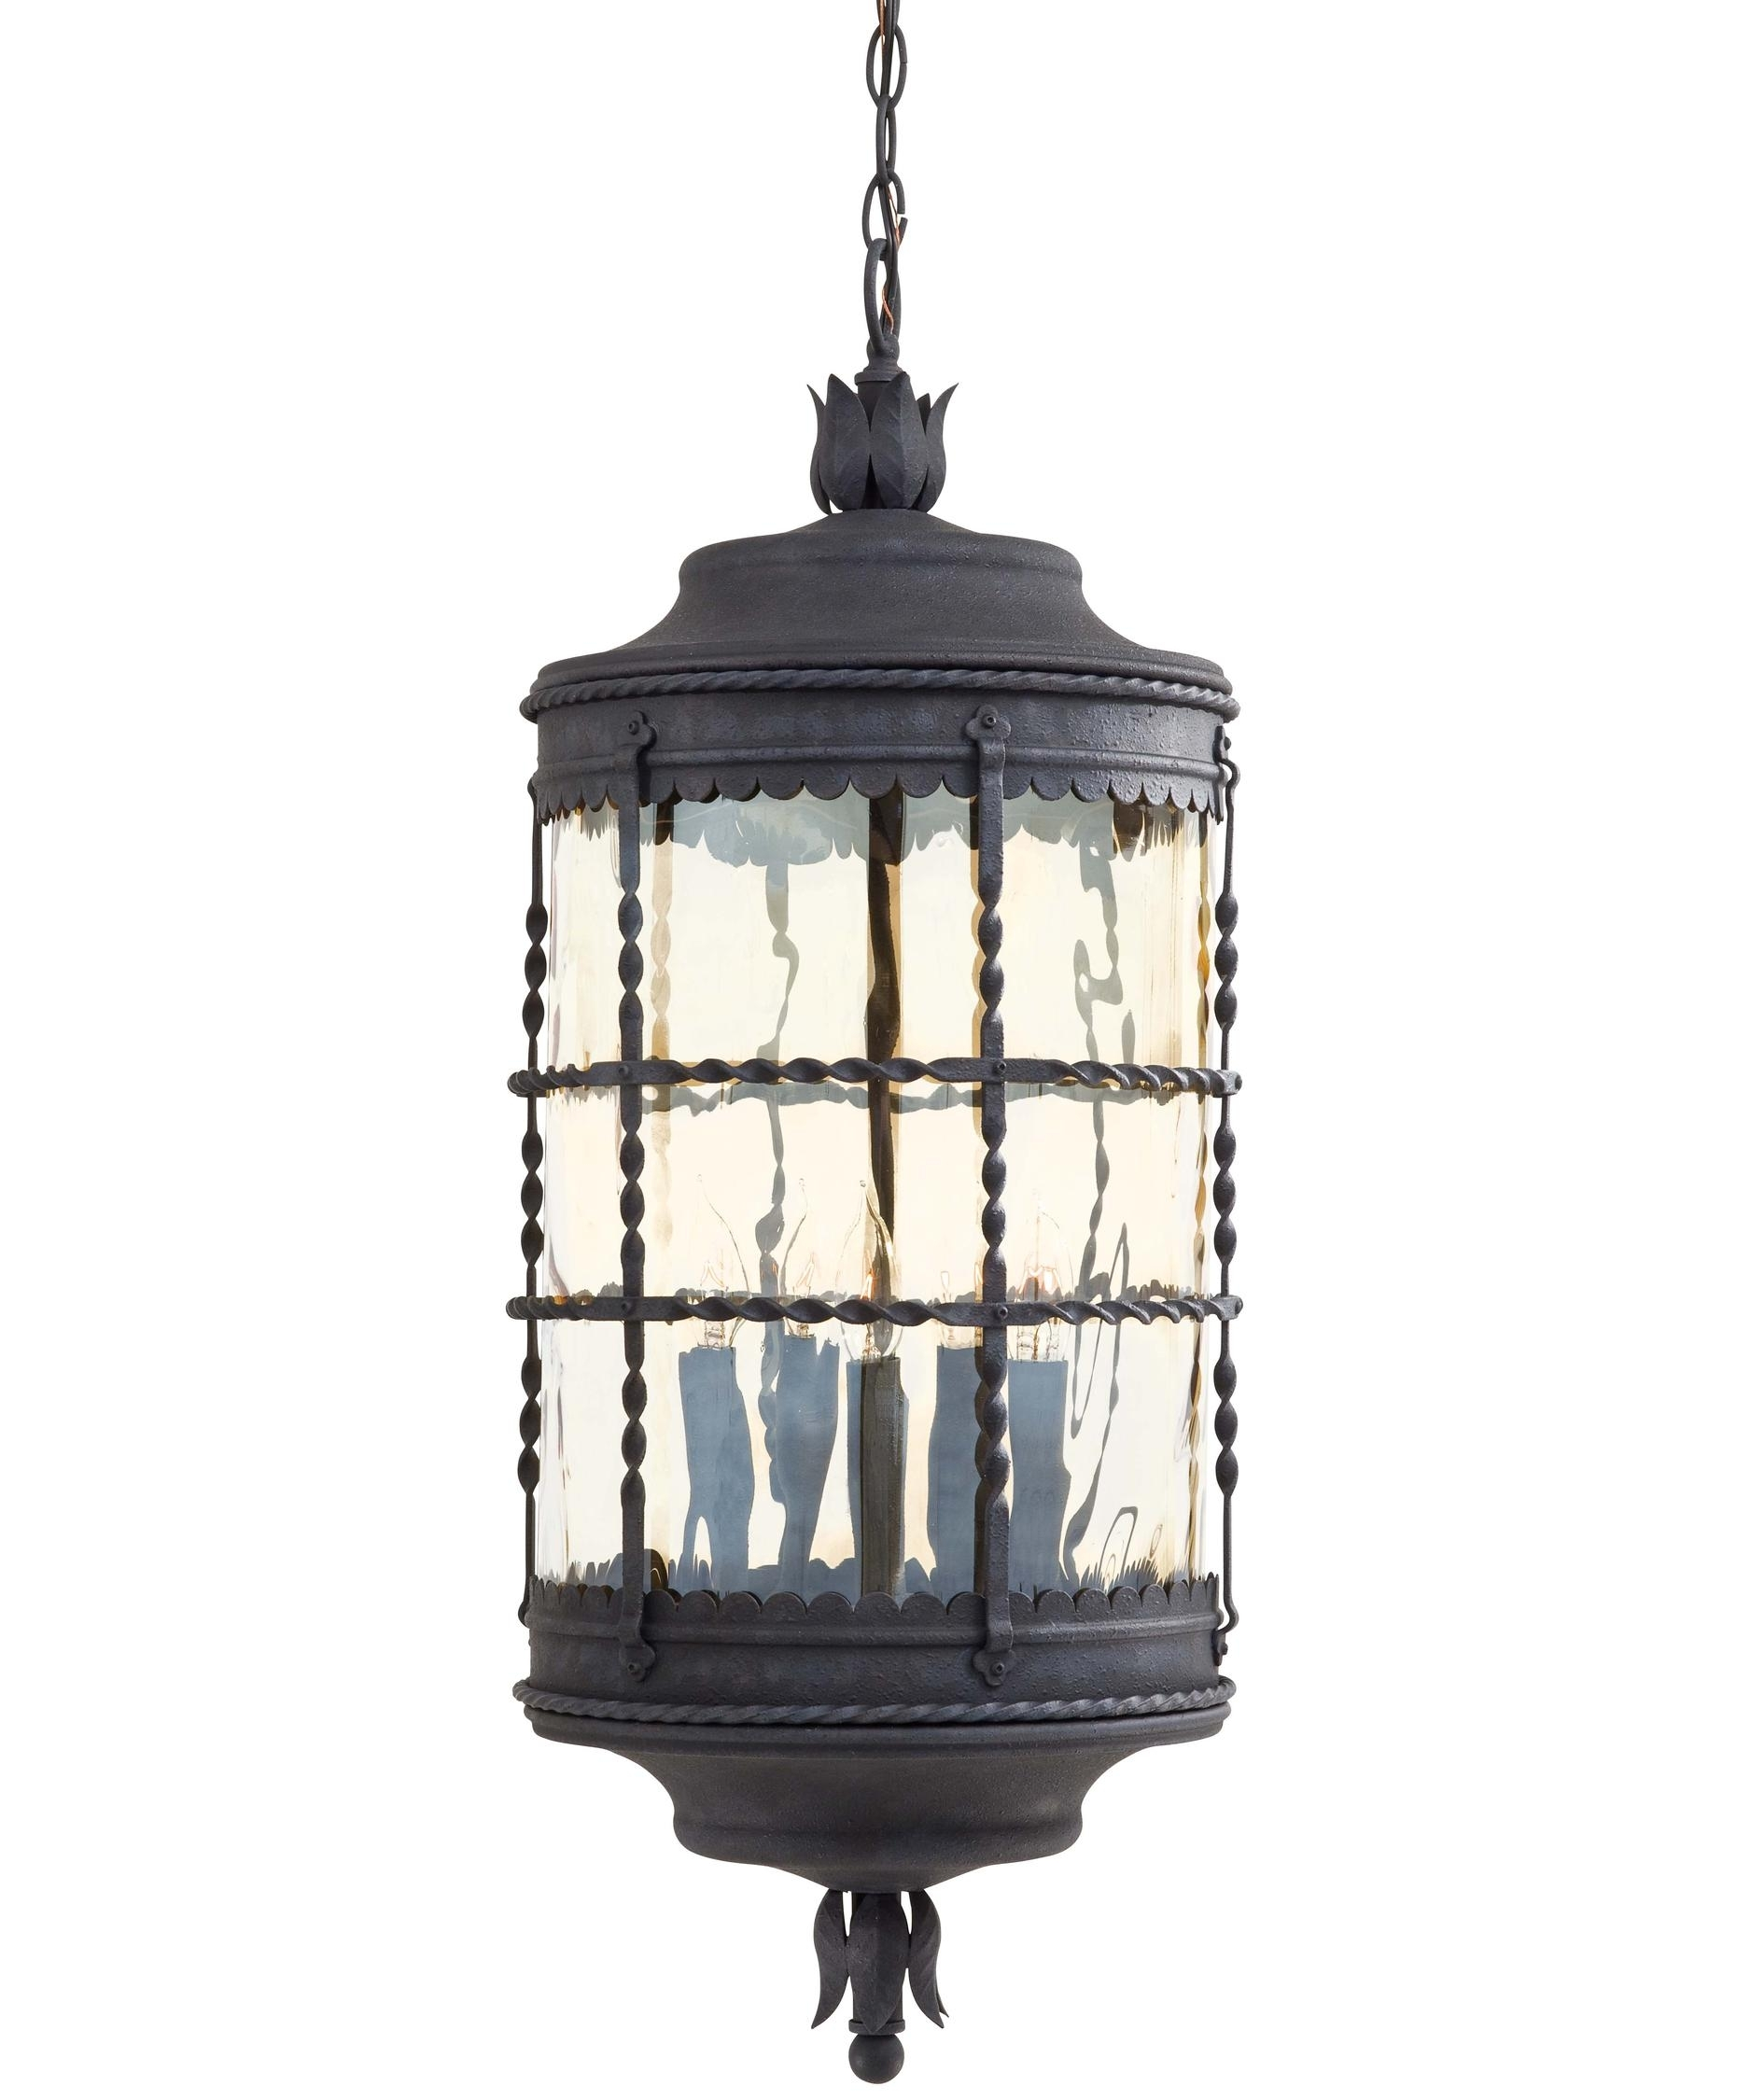 Minka Lavery 8884 Mallorca 13 Inch Wide 5 Light Outdoor Hanging Intended For Outdoor Hanging Glass Lights (View 13 of 15)